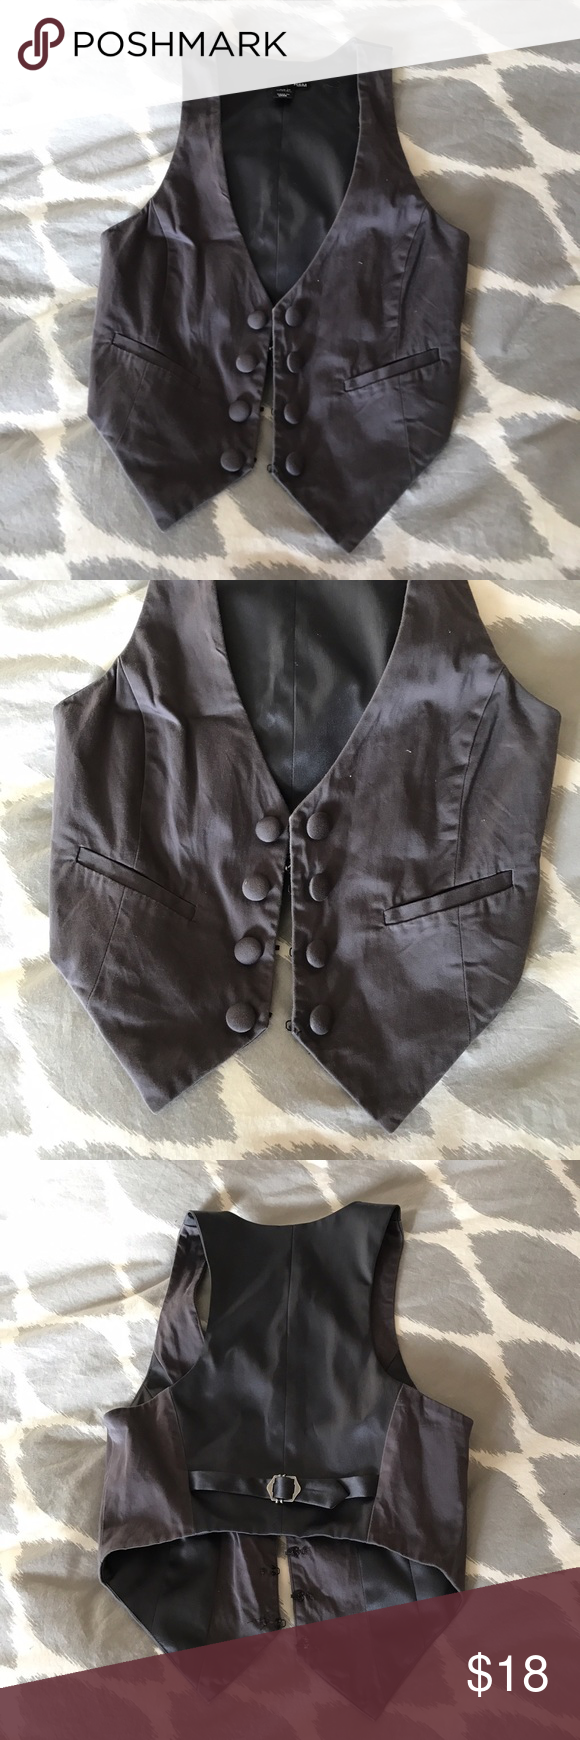 H&M Gray Vest, Size 4, Small Worn a few times, in excellent condition. H&M Tops